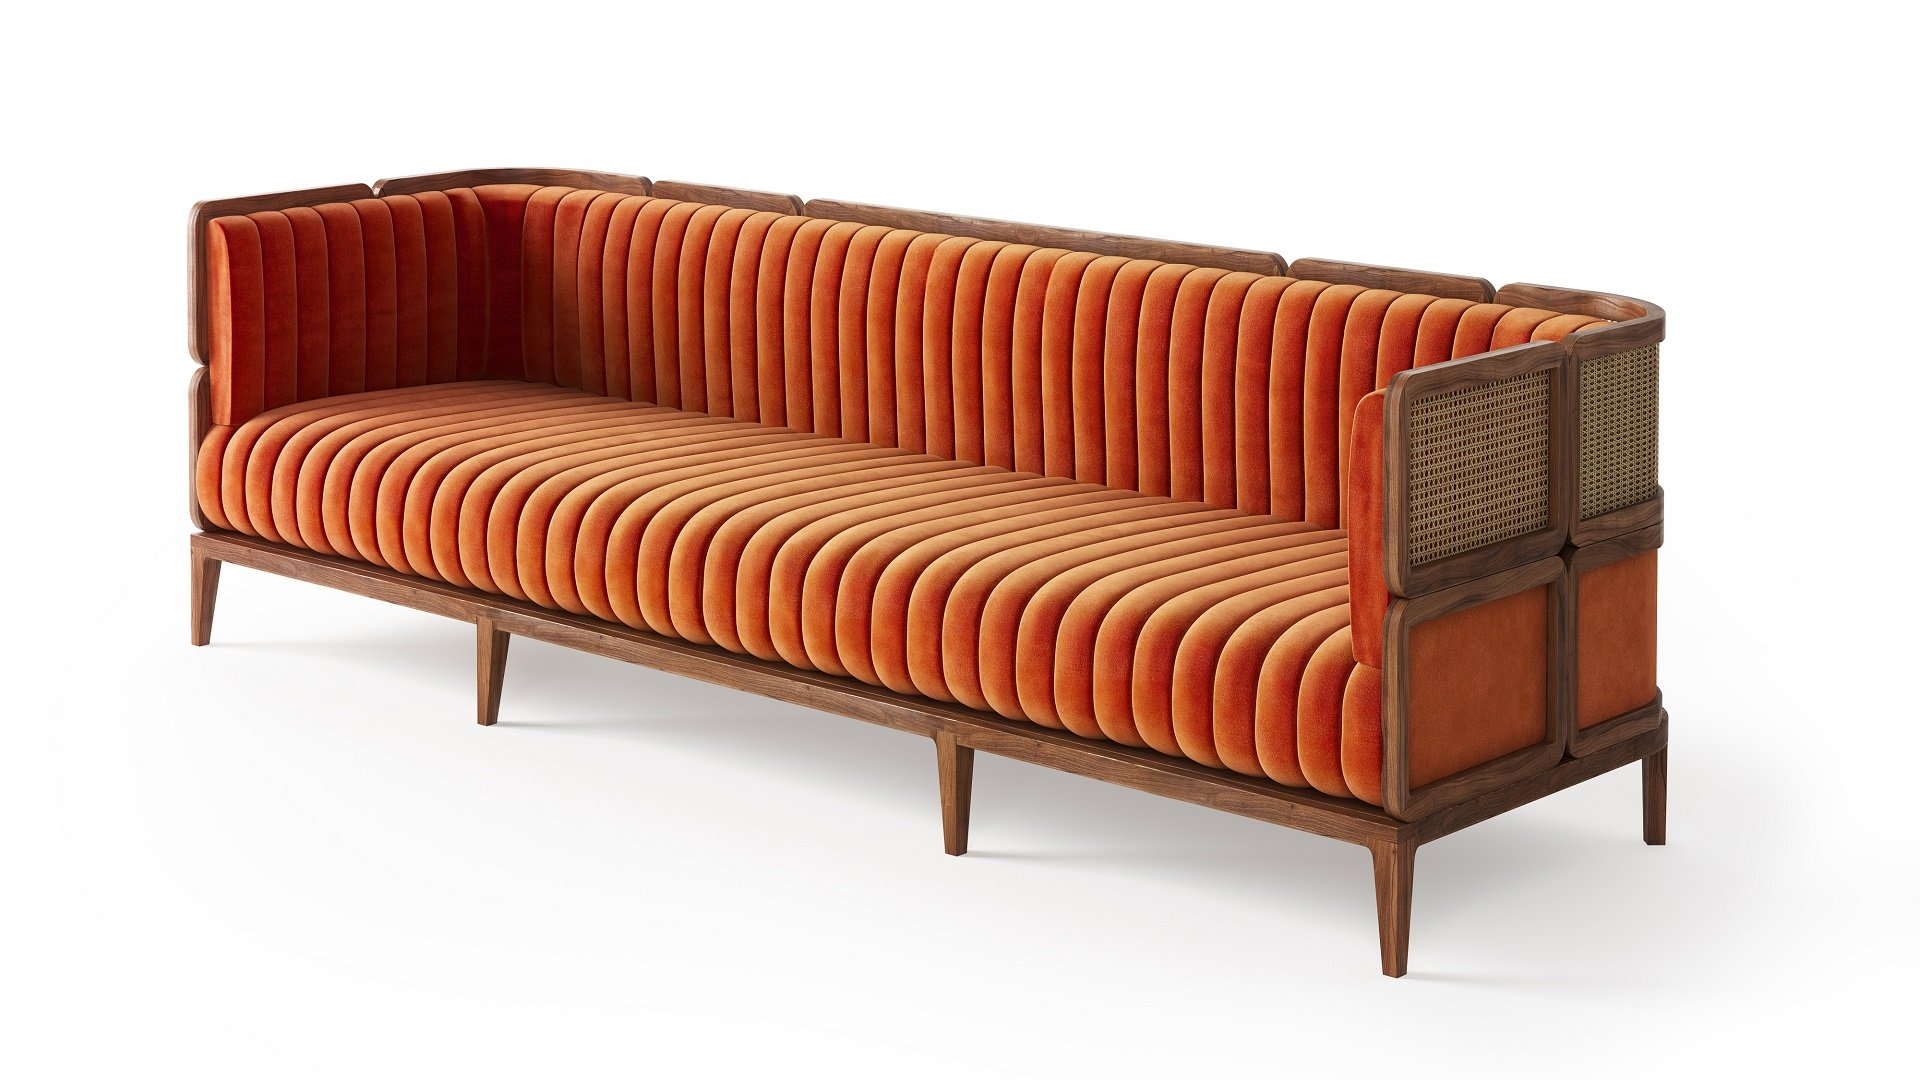 3D Rendering of a Couch